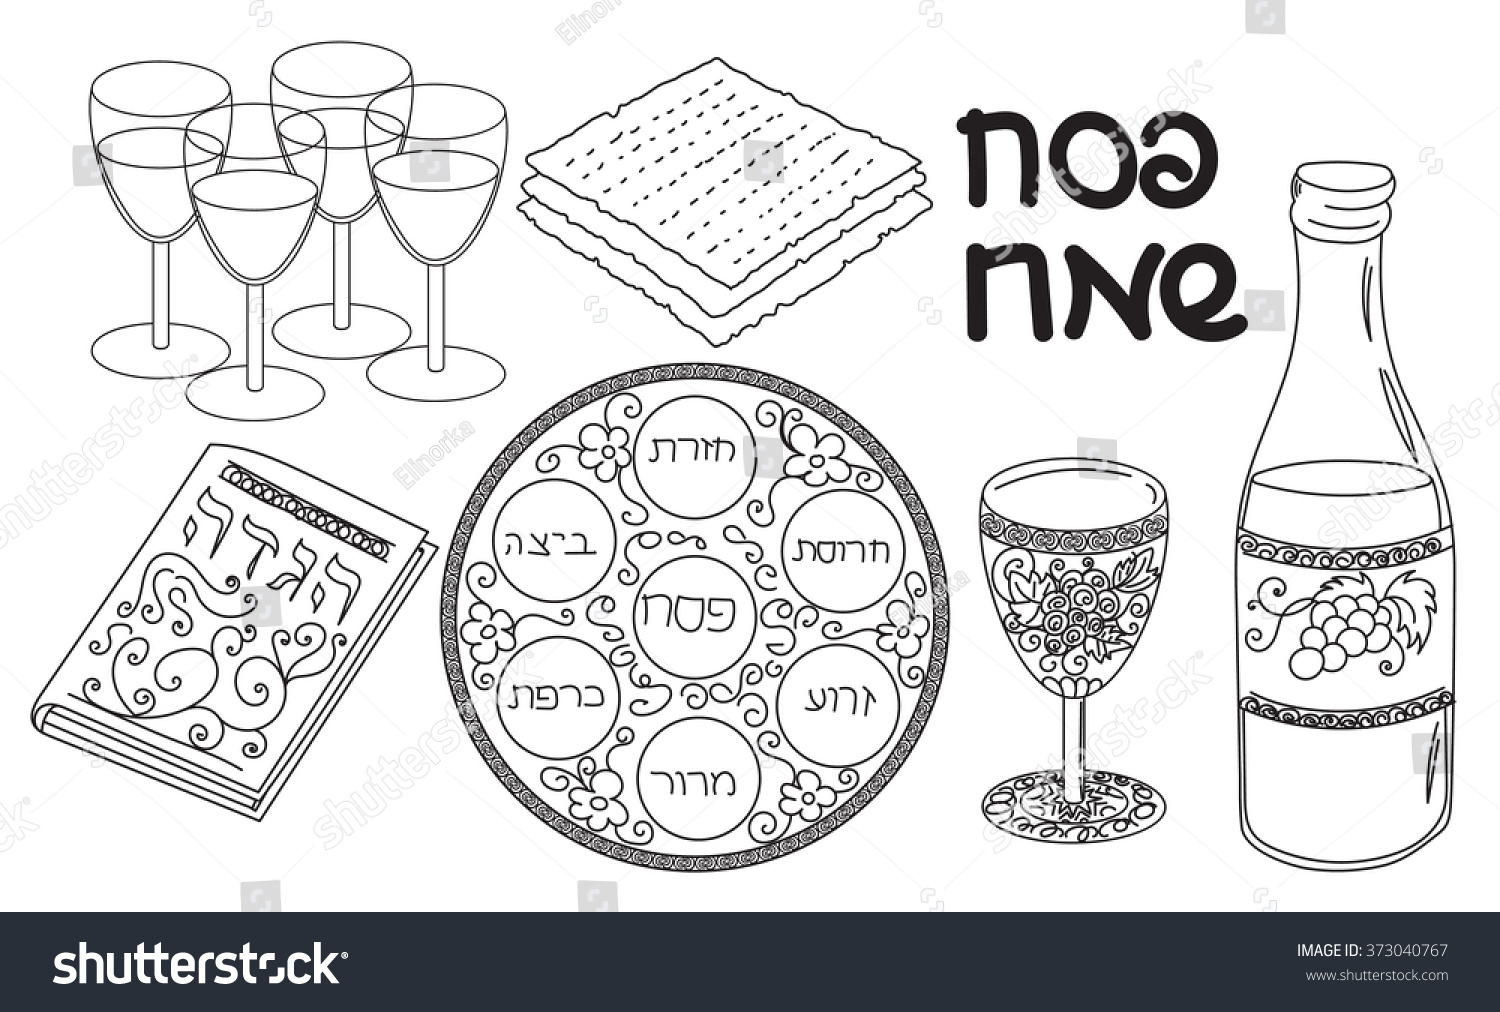 Jewish Holiday Passover Symbols Doodles Set Stock Vector Royalty